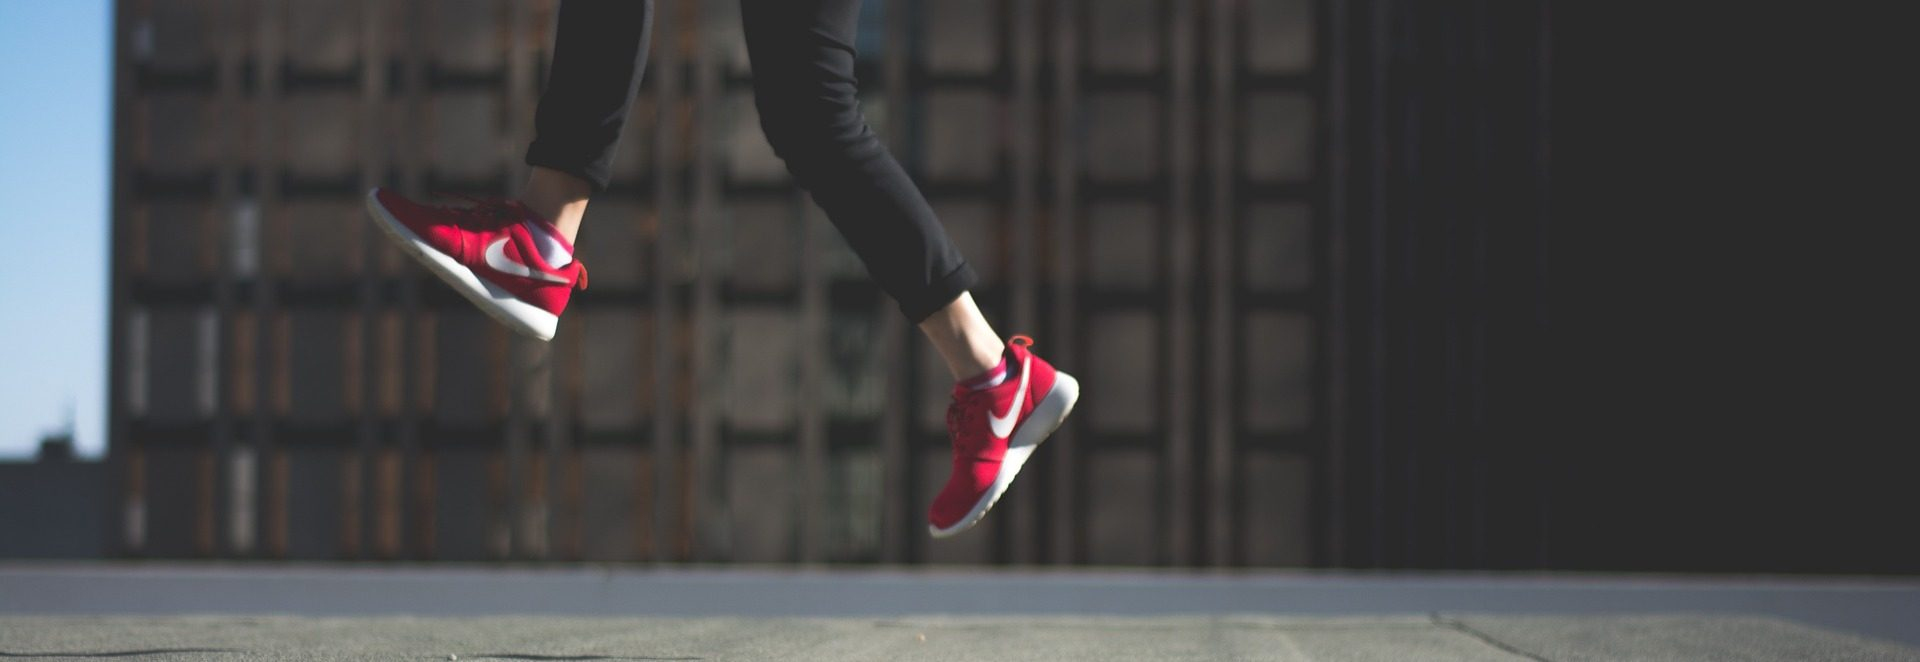 nike-action-red-shoe